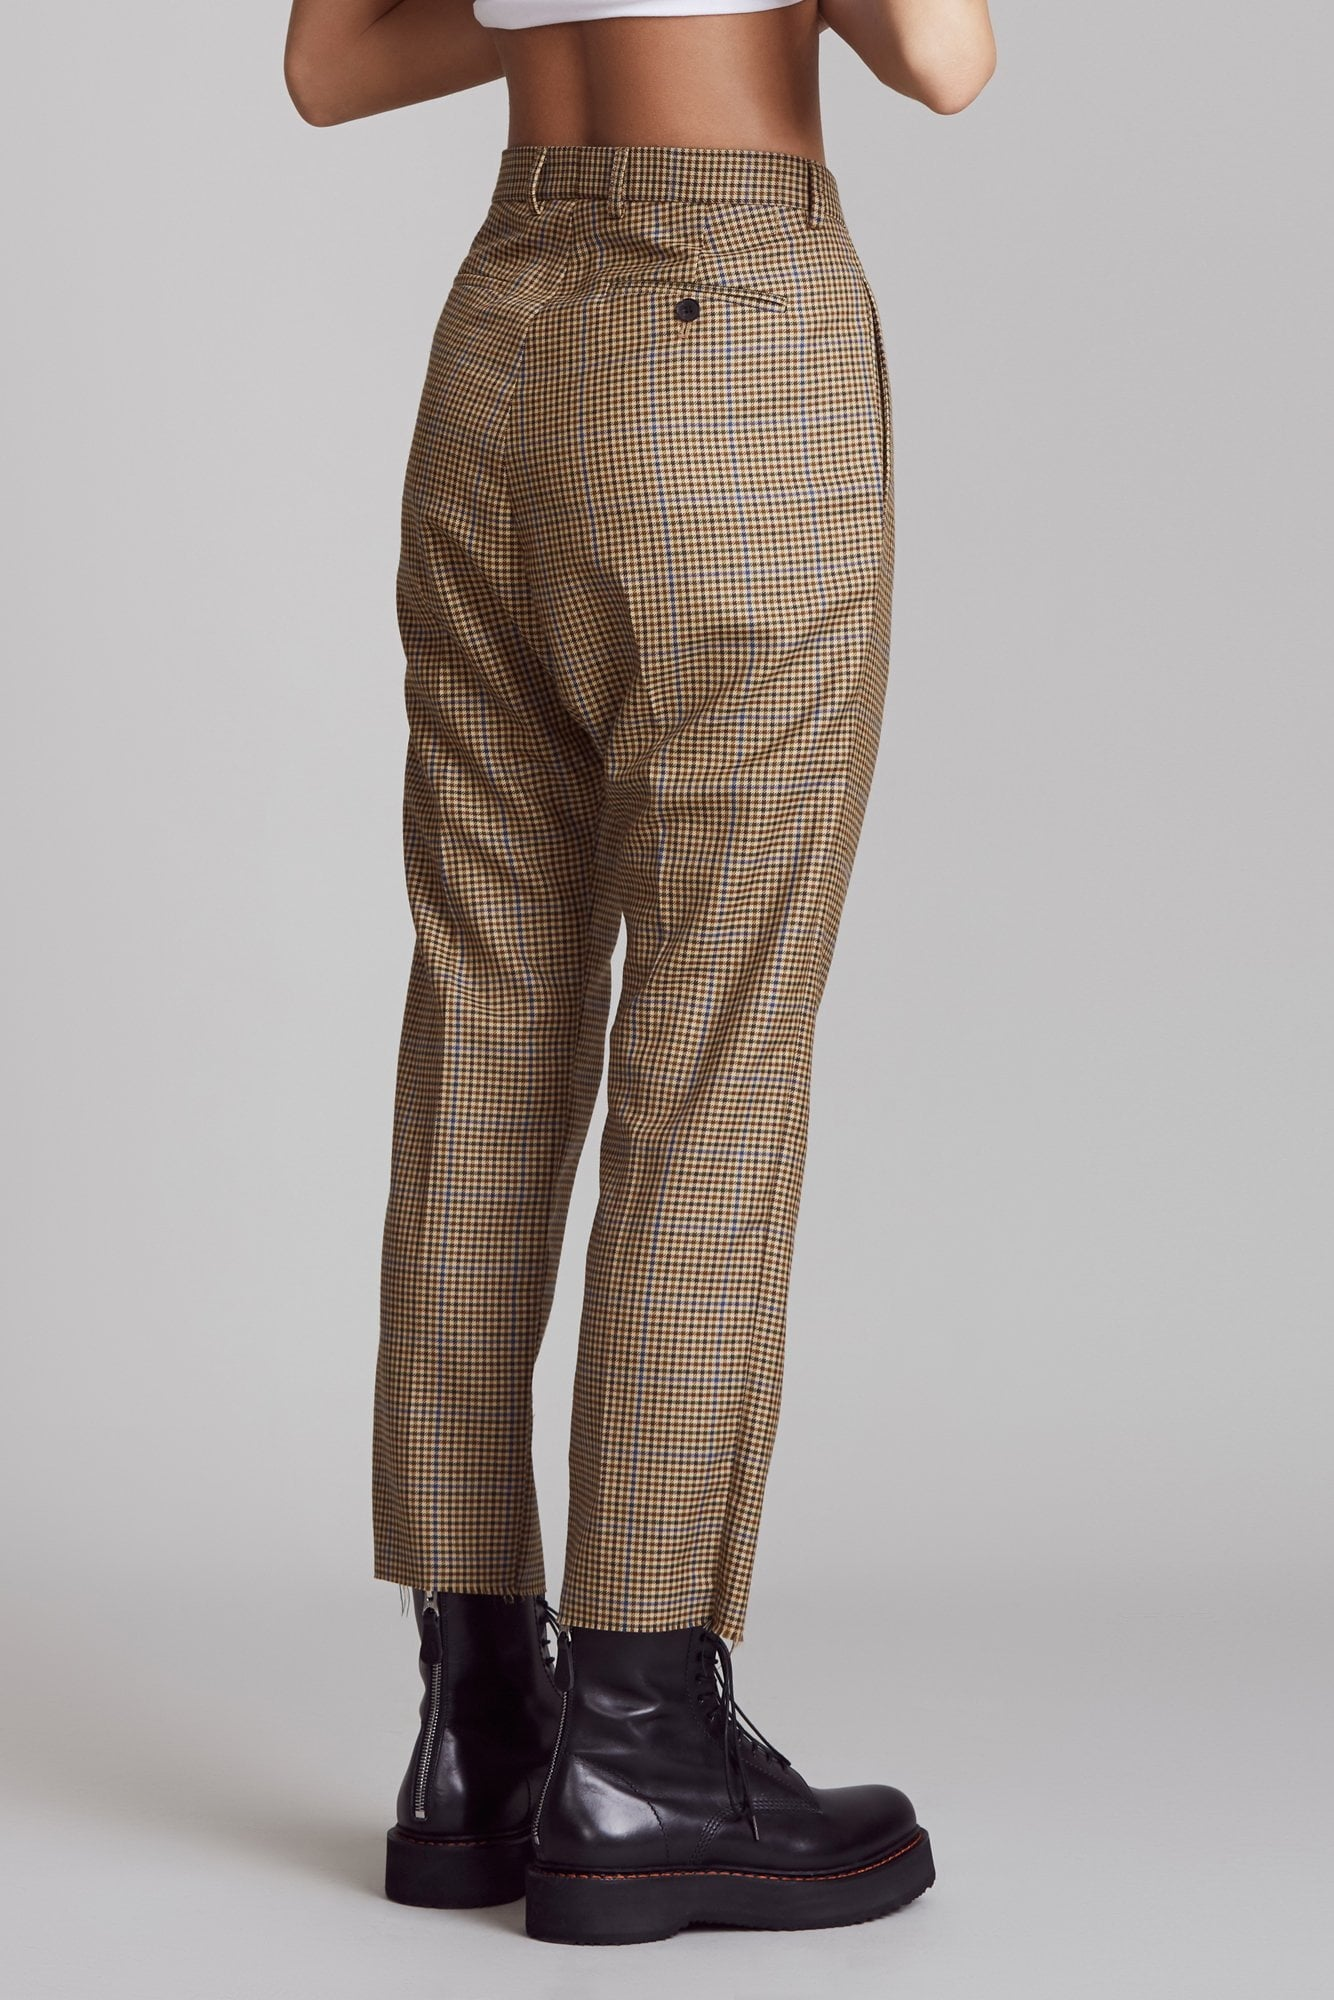 Tailored Drop Trouser - Brown Multi Check